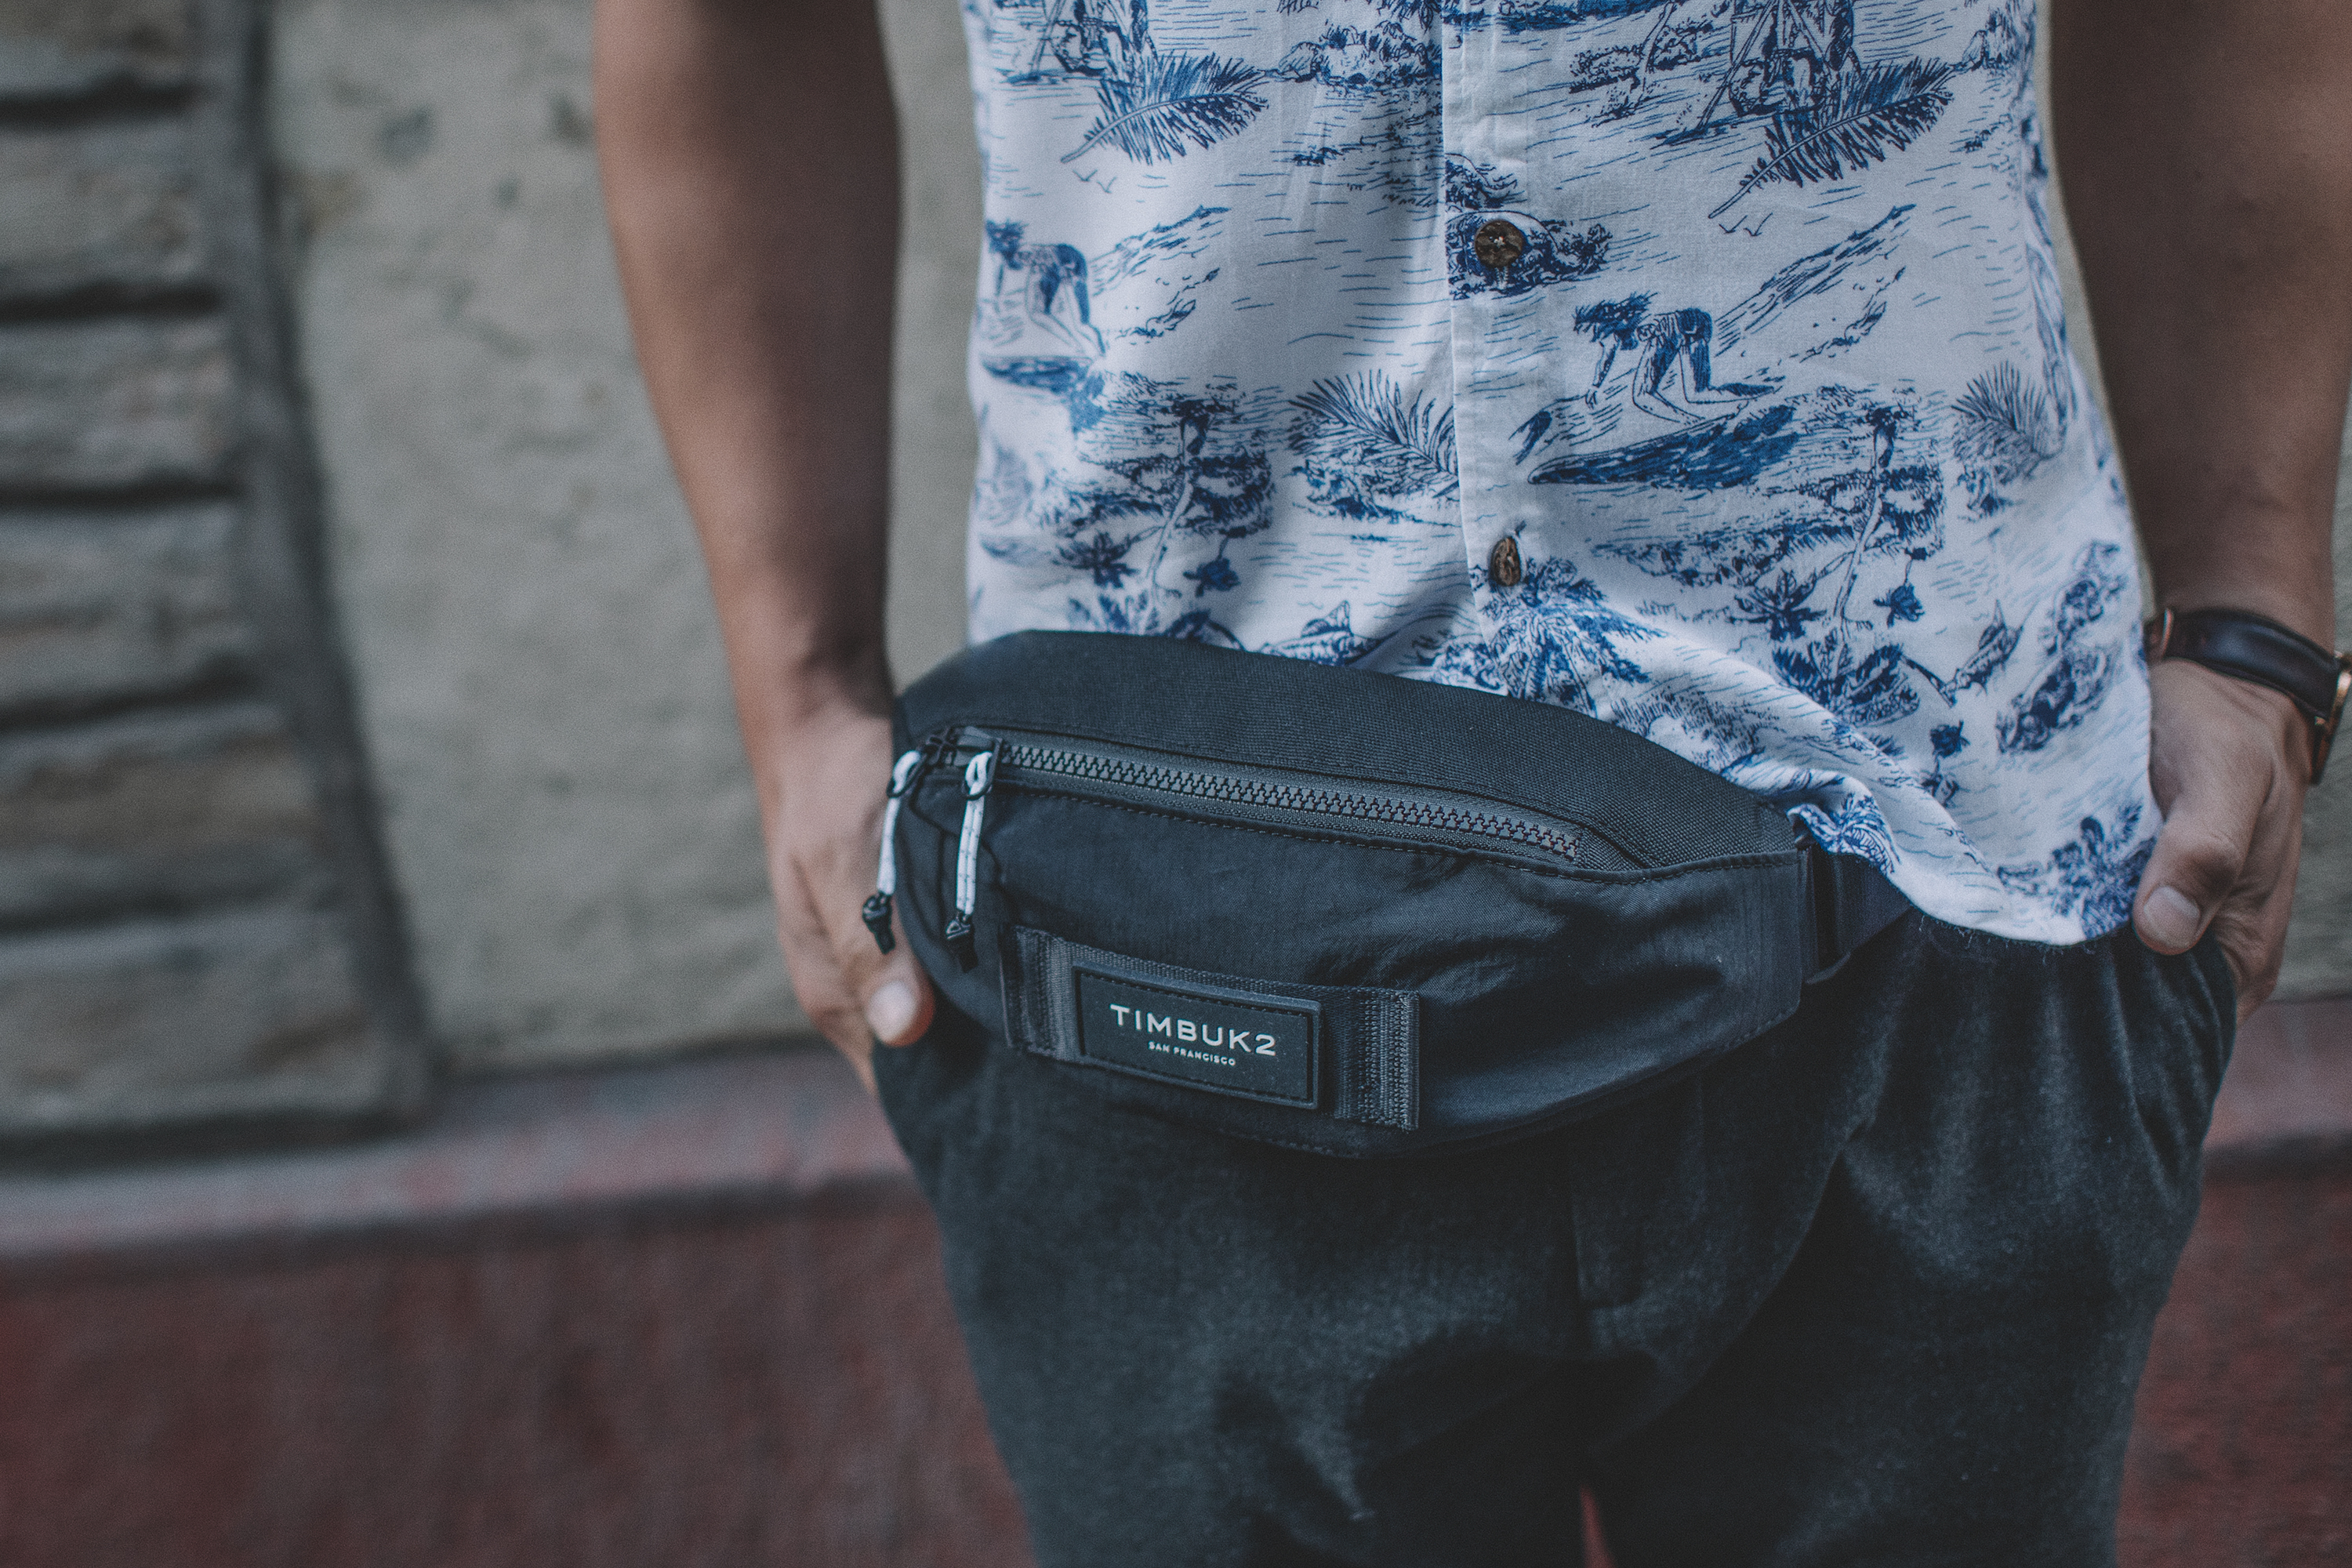 Timbuk2 Slacker Chest Pack